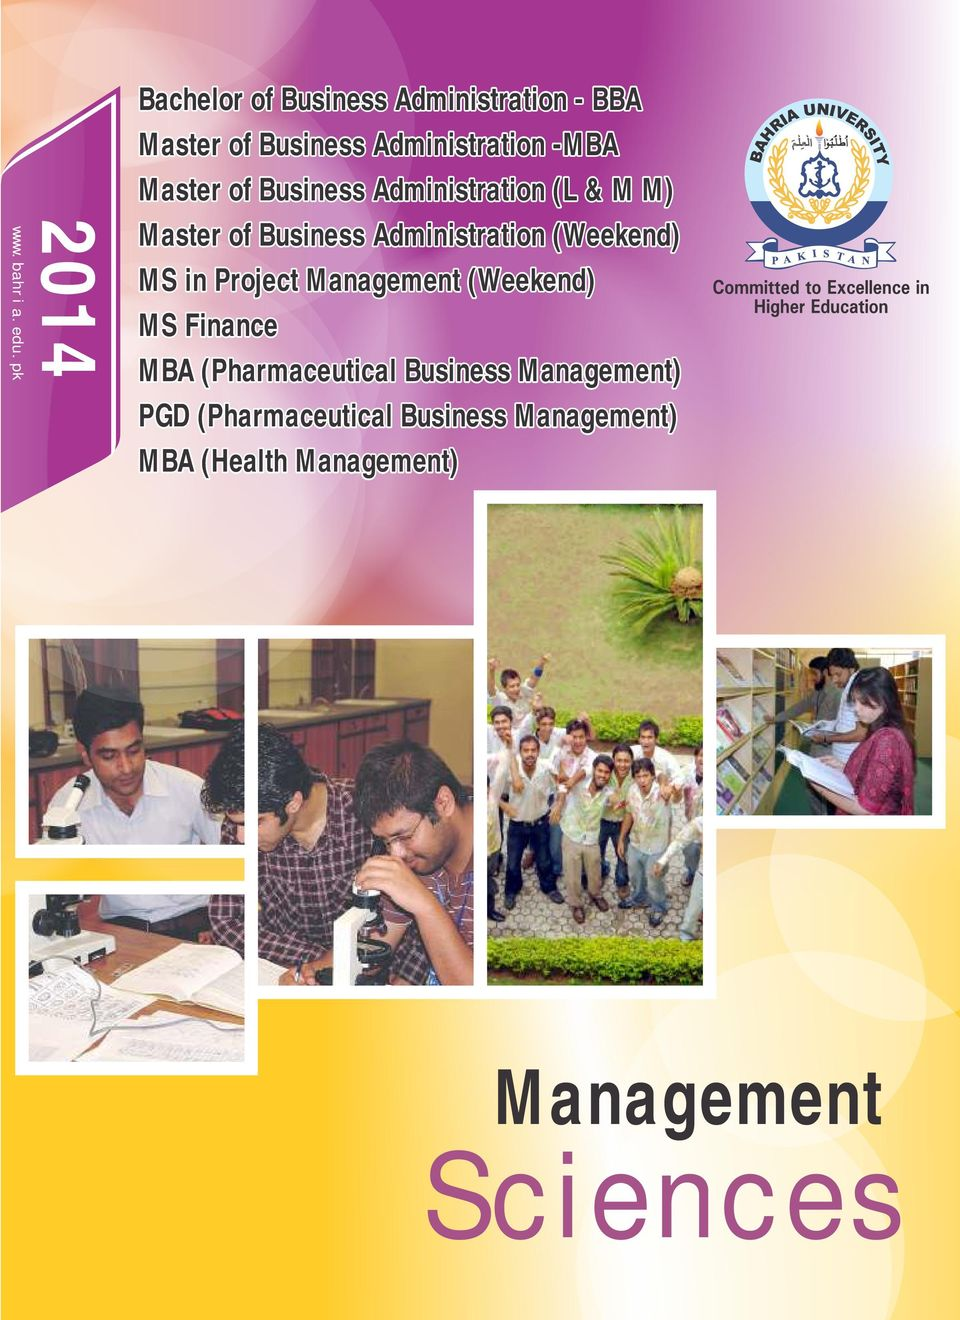 of Business Administration (L & M M) Master of Business Administration (Weekend) MS in